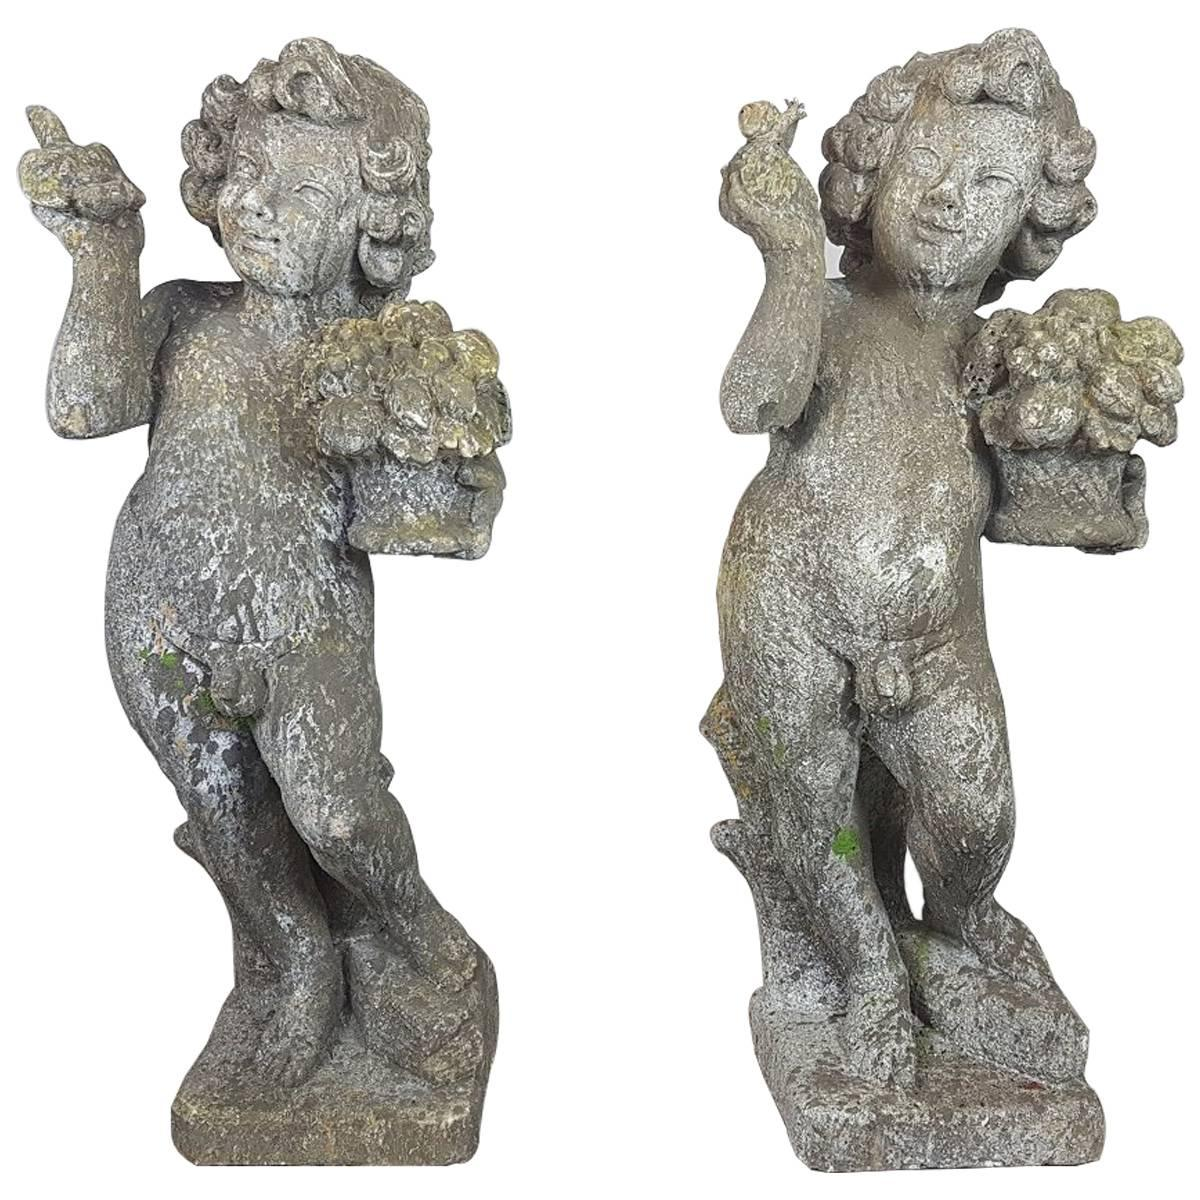 20th Century Italian Neoclassical Garden Statues Set Garden Ornament For Sale At 1stdibs